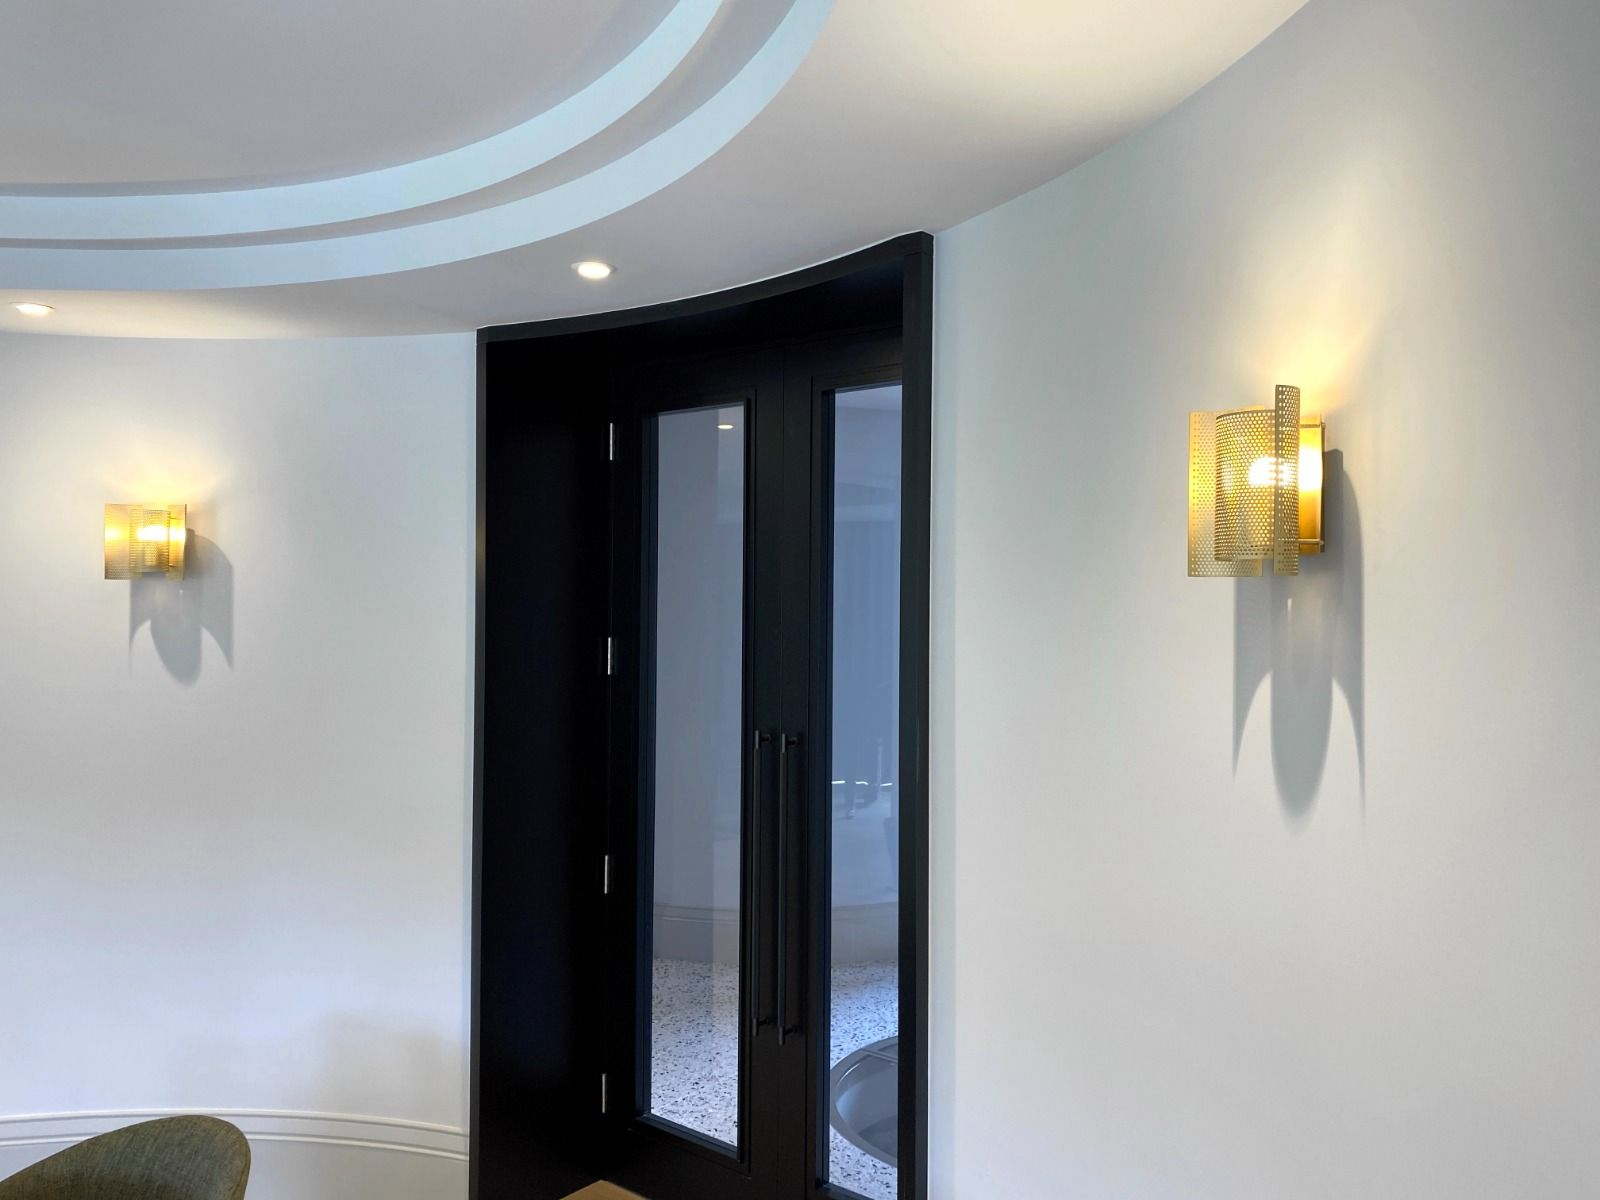 Northern Butterfly Wall Lights - Perforated - Brass - On - Fitted to a curved wall